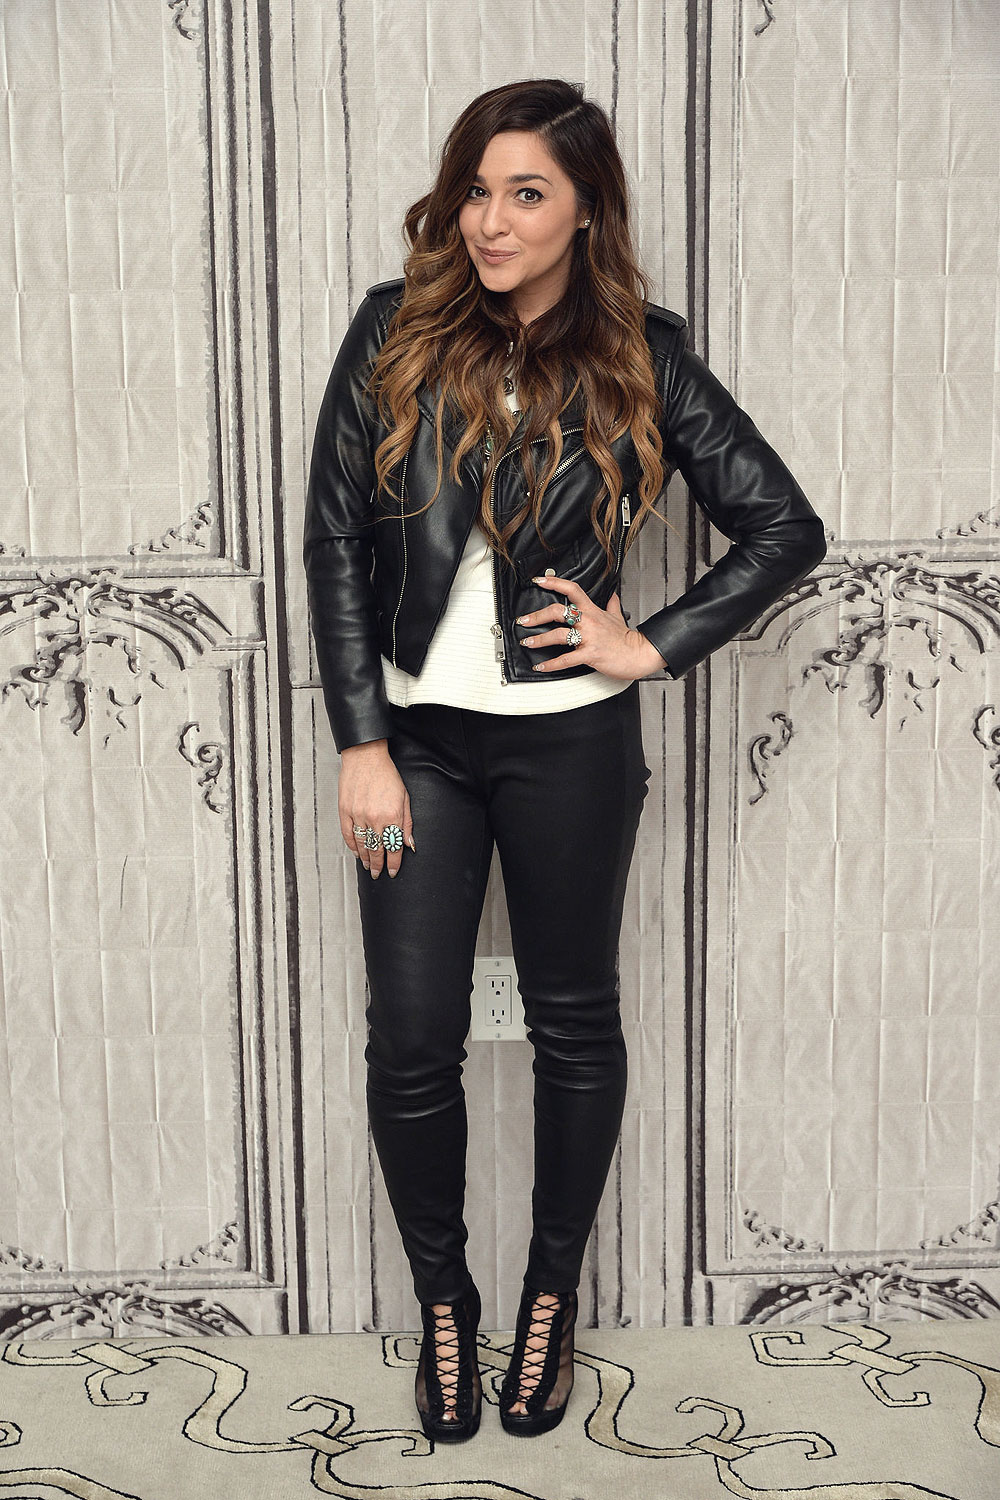 Alisan Porter attends season 10 Winner of The Voice